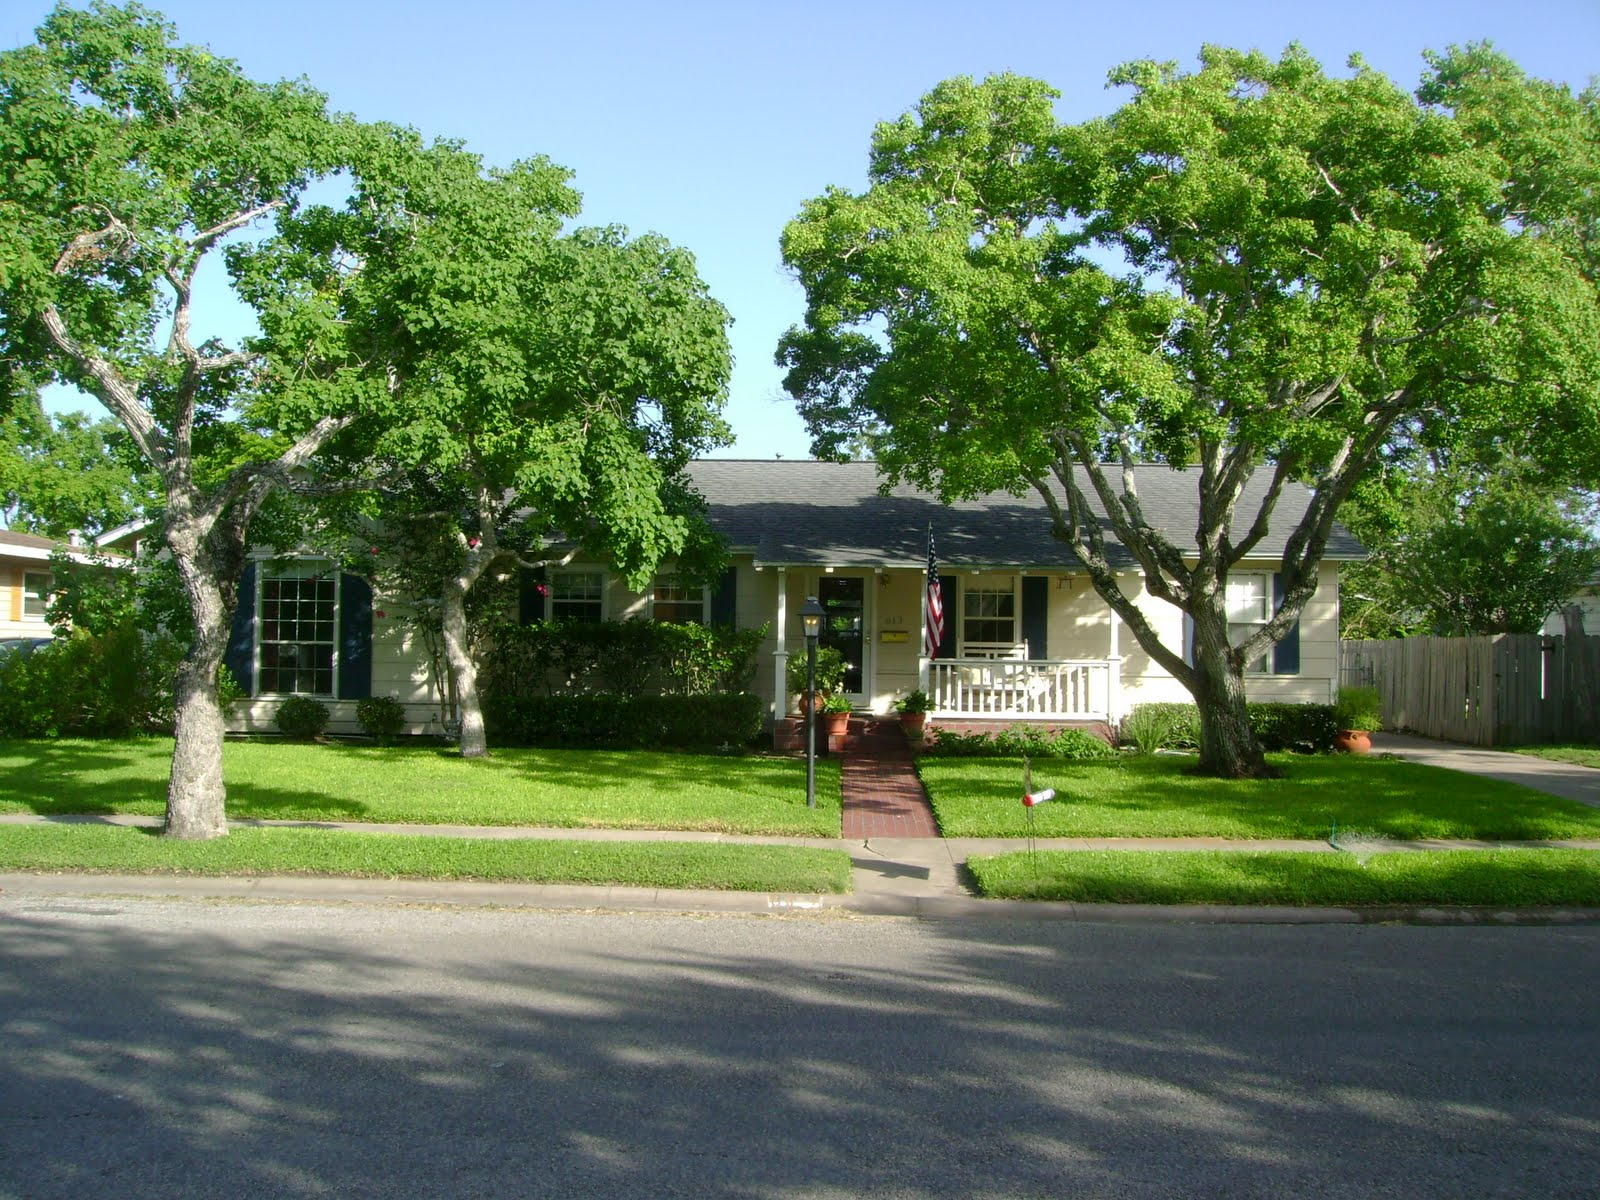 613 stirman street 78411 for Nice trees for front yard